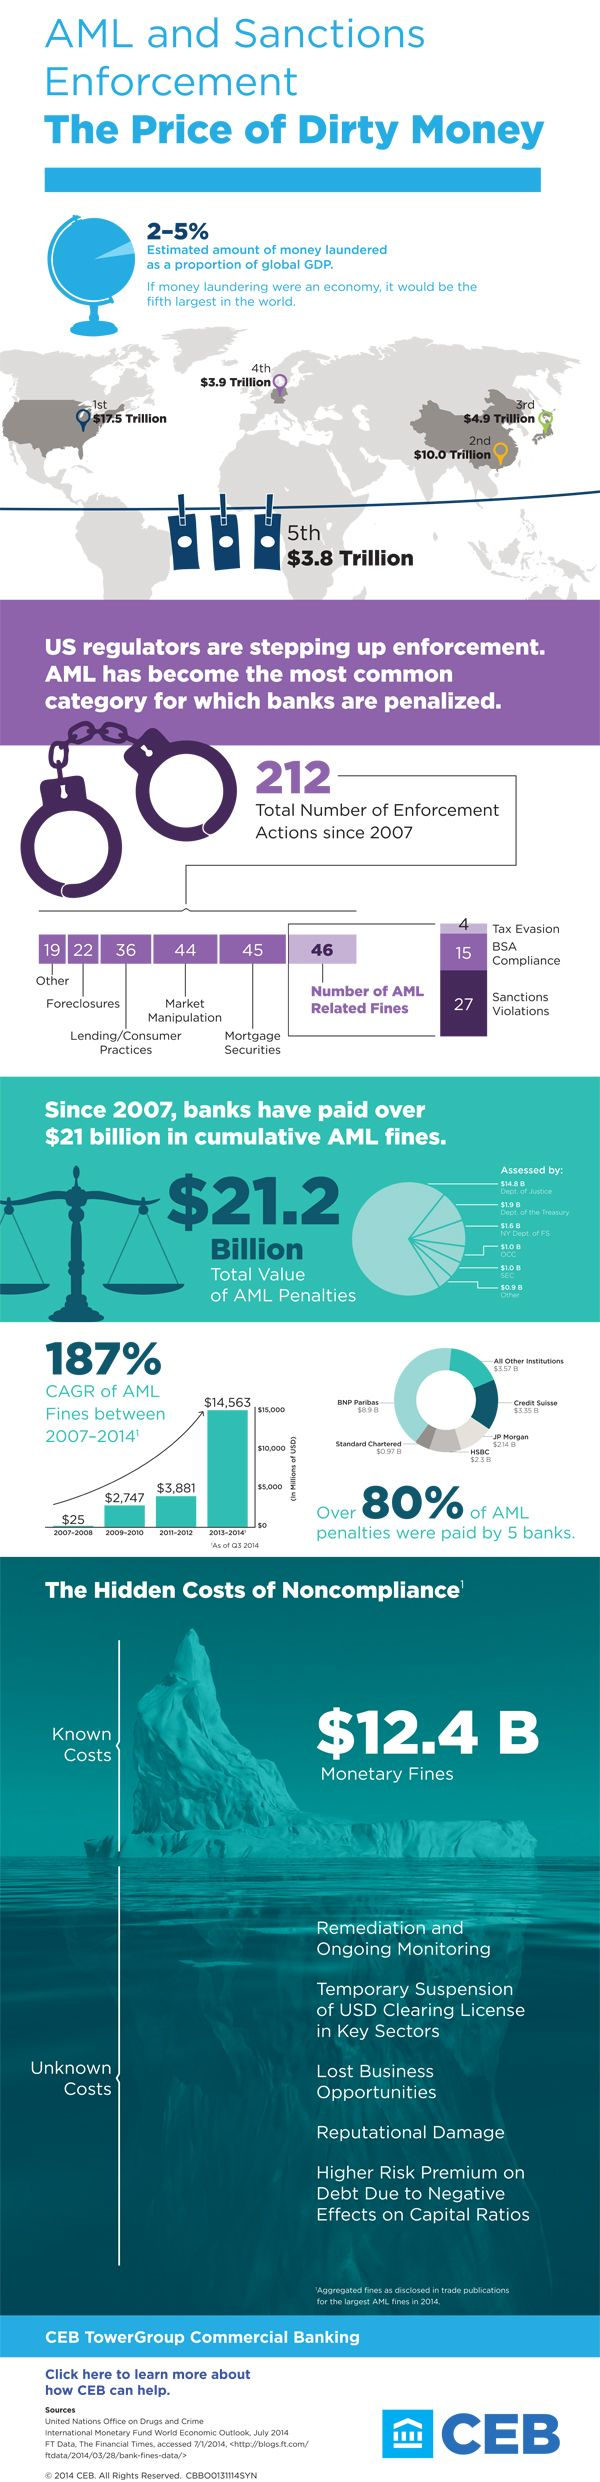 Anti Money Laundering Infographic 2014